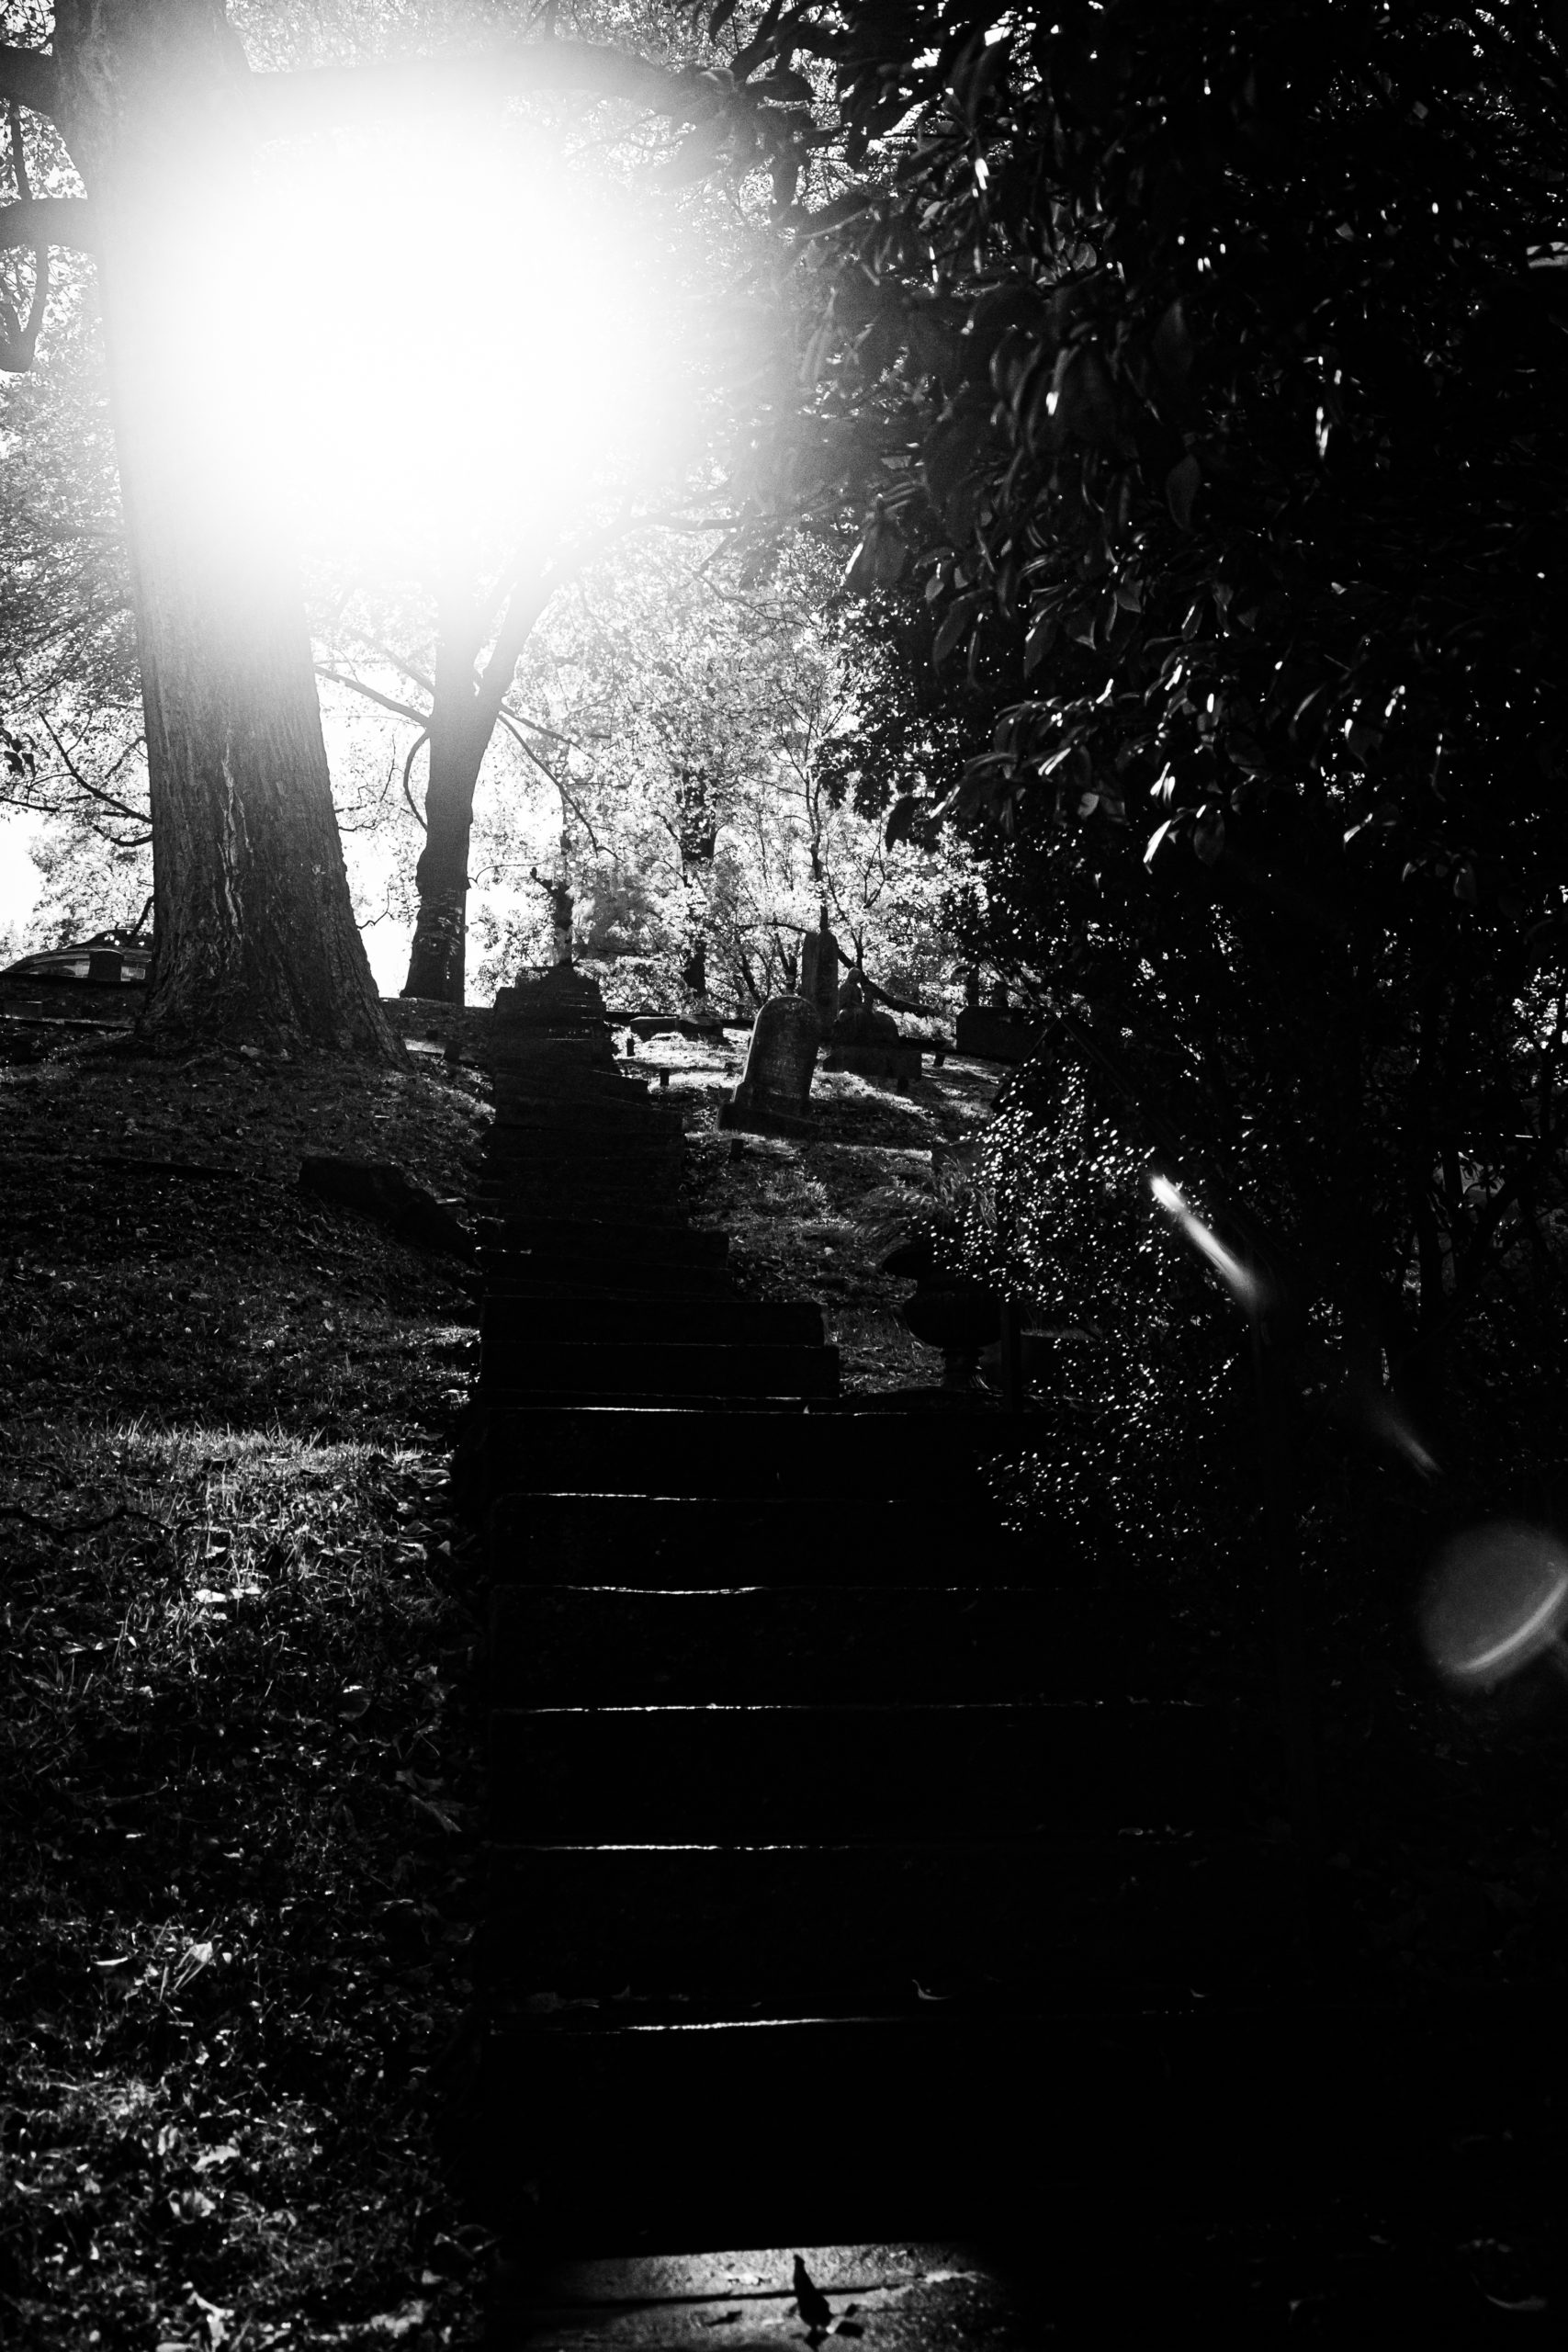 A stone staircase leading from the ground towrads the top of a hill, with headstones visible on the right side of the photo along with shrubs, the sun in the upper mid to left side, and a tree to the left, about halfway up. With many other trees in the background.